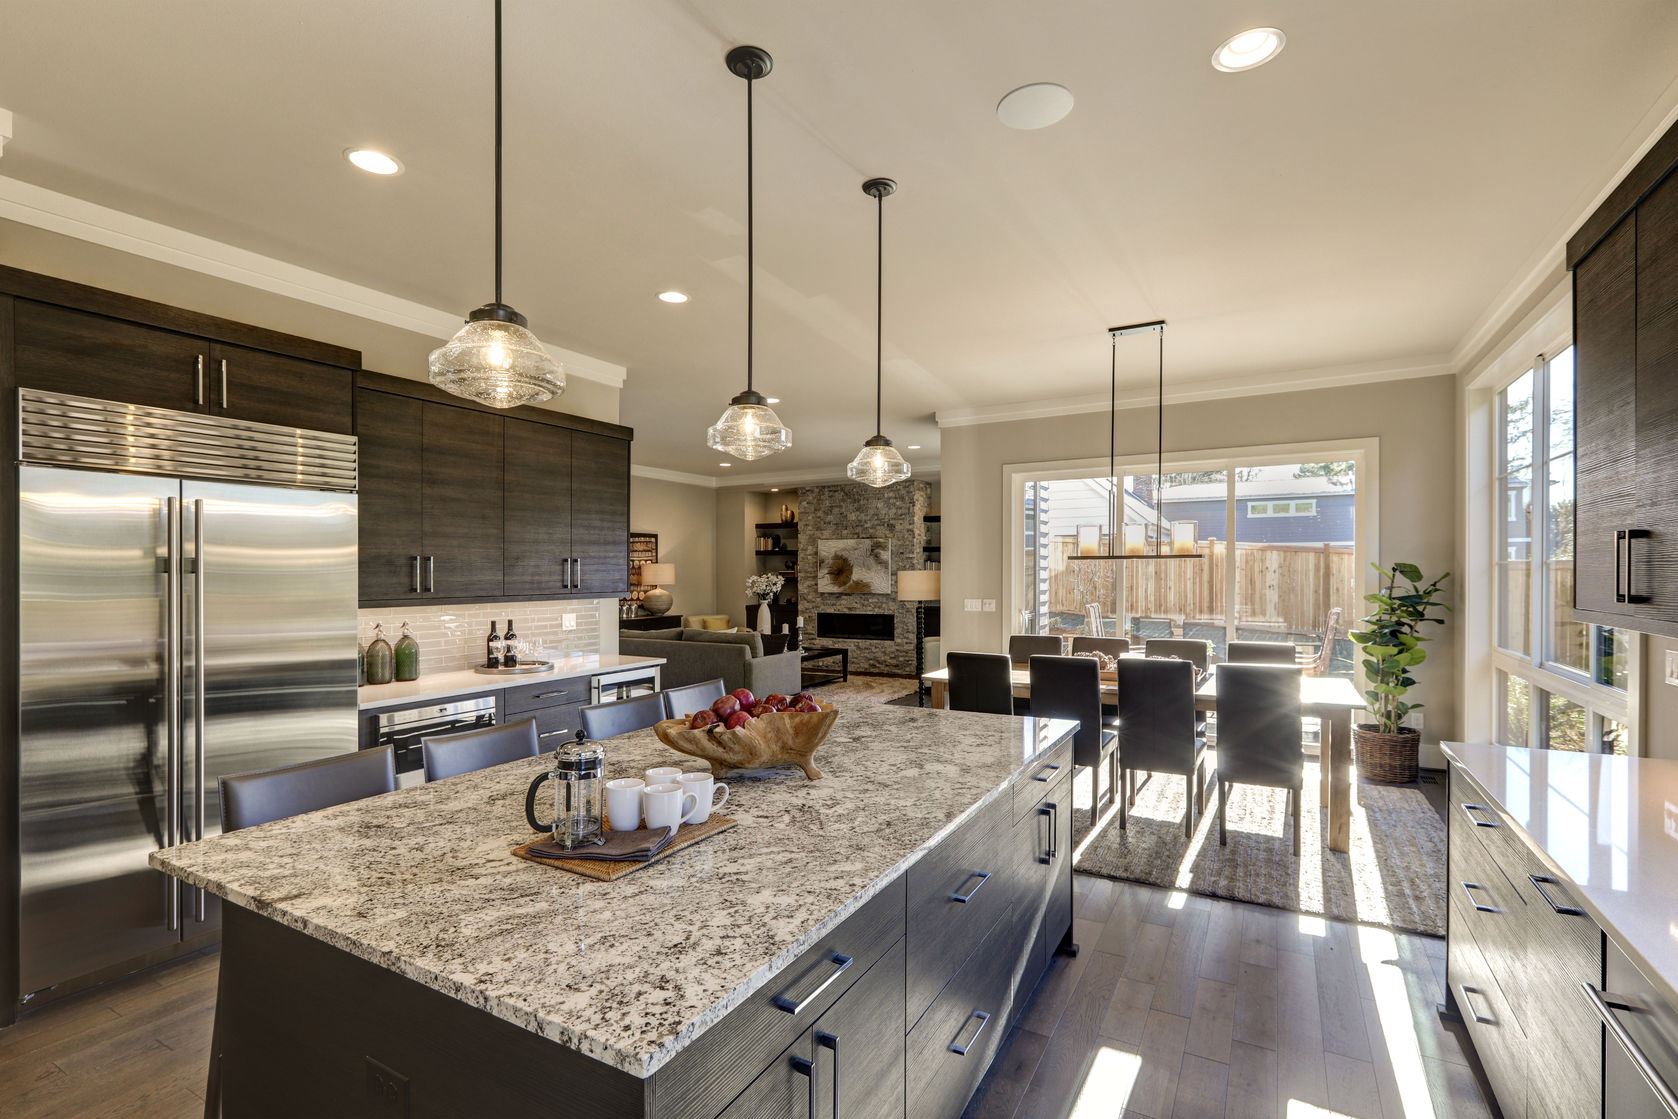 Modern Kitchen Remodel Featuring Gray Flat Front Cabinetry Paired With  White Quartz Countertops And A Tile Backsplash With A Granite Kitchen  Island.